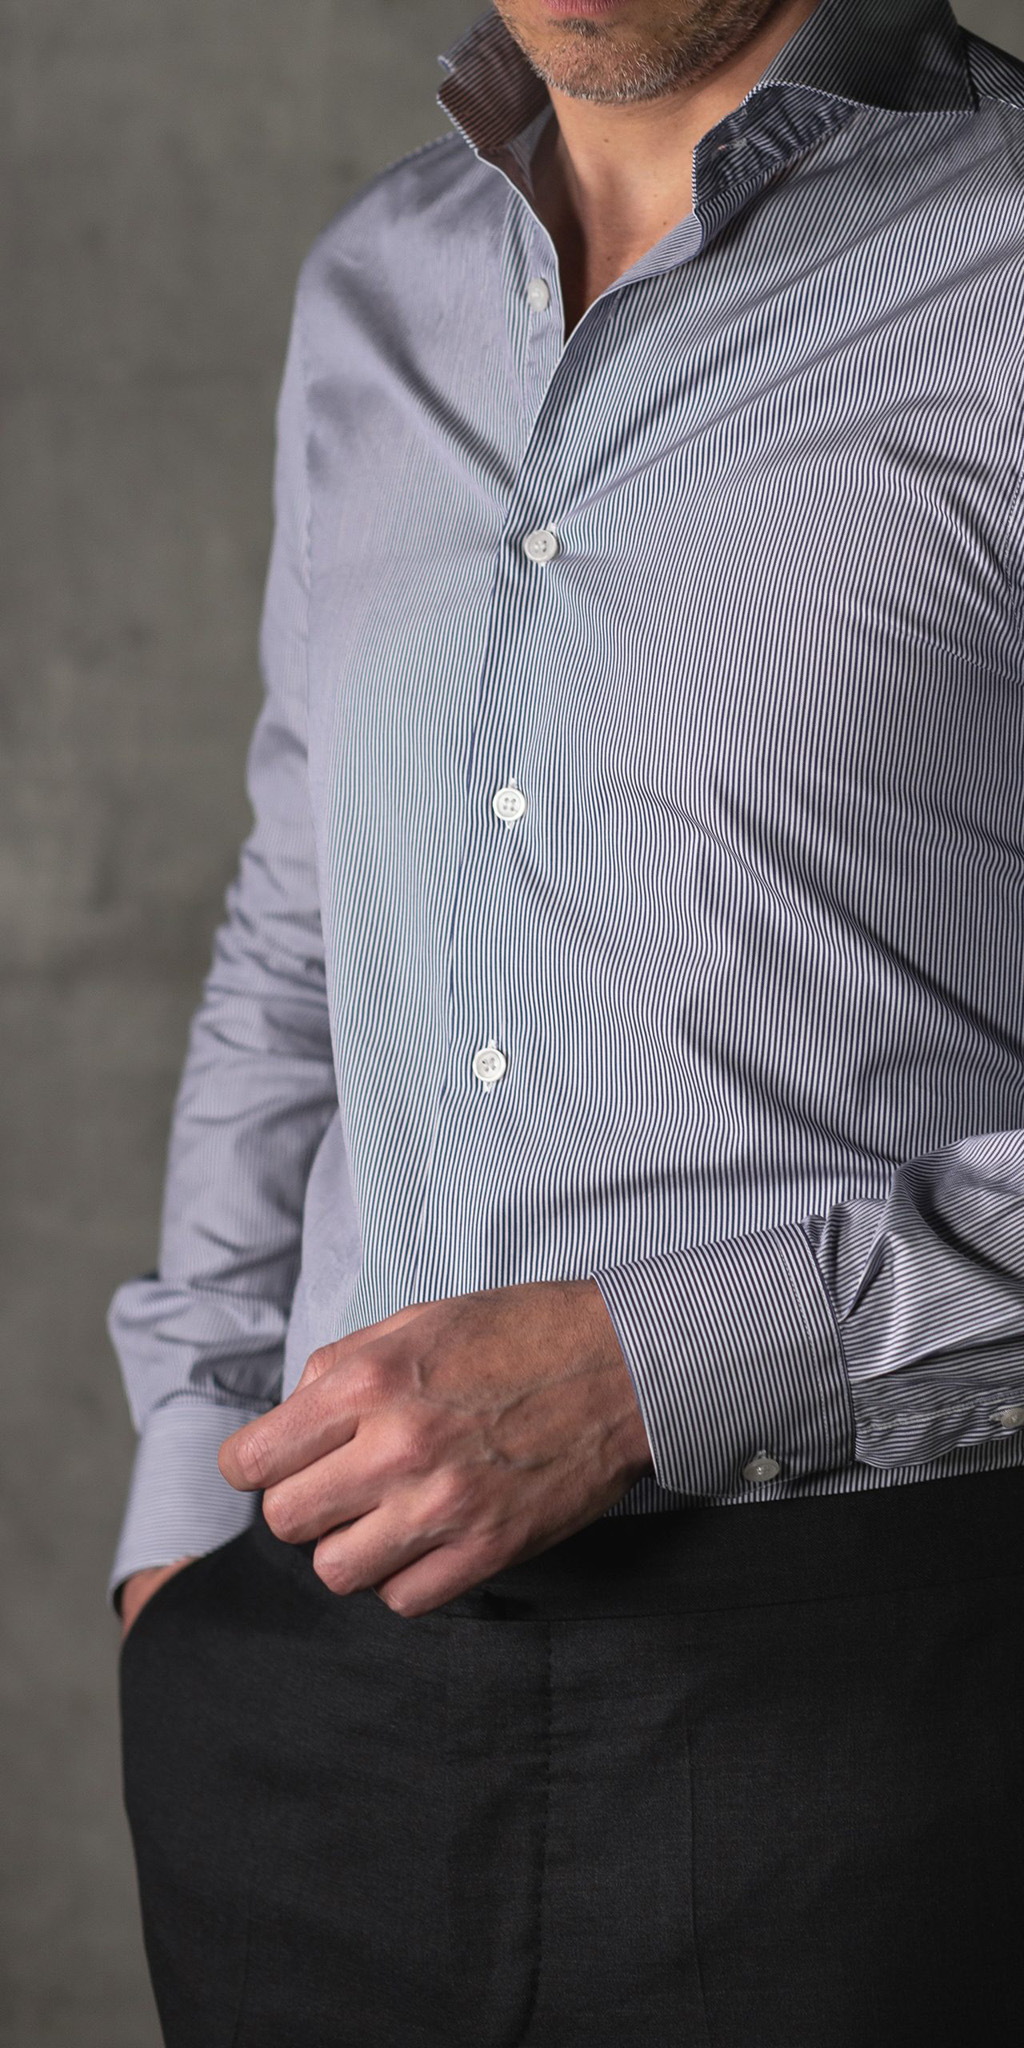 SHIRT-CAMISA-01-02-The-Seëlk-2